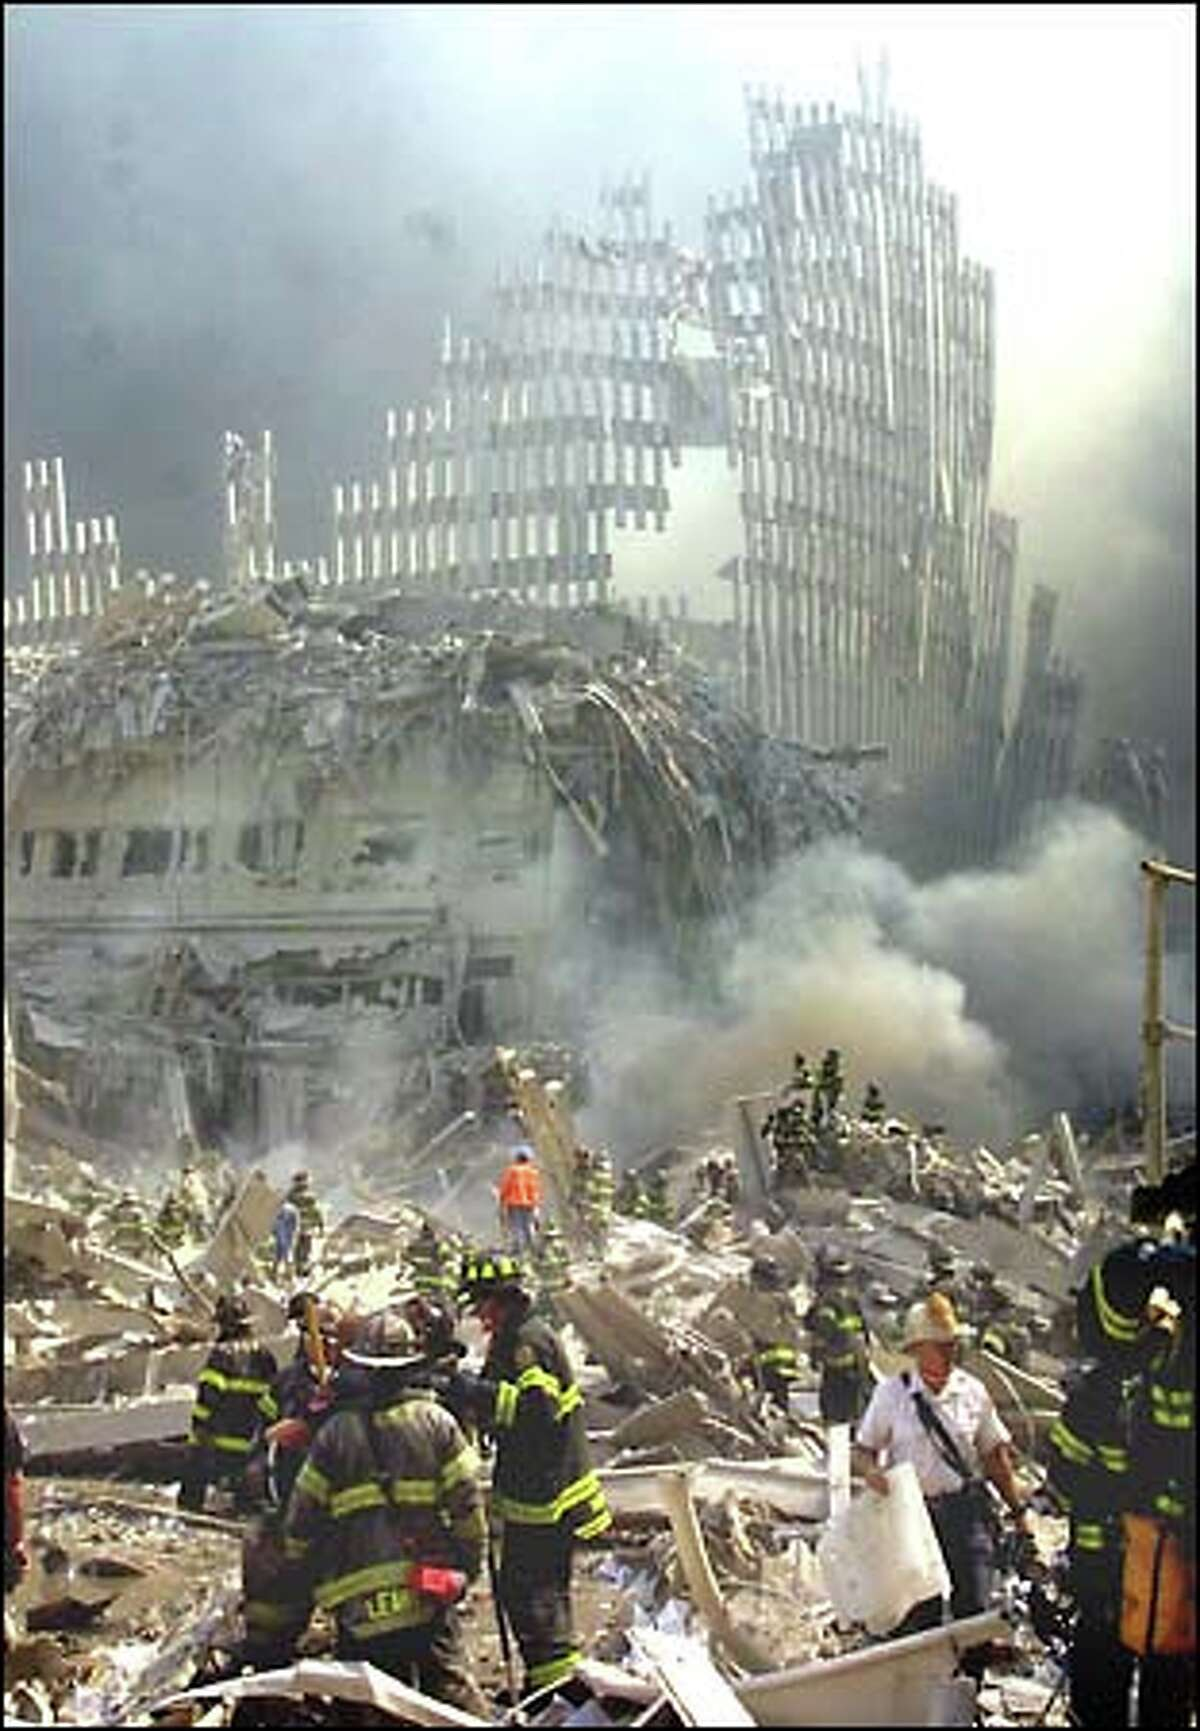 Rescue workers scramble through the rubble of the collapsed World Trade Center. A shell of the destroyed landmark looms in the background.